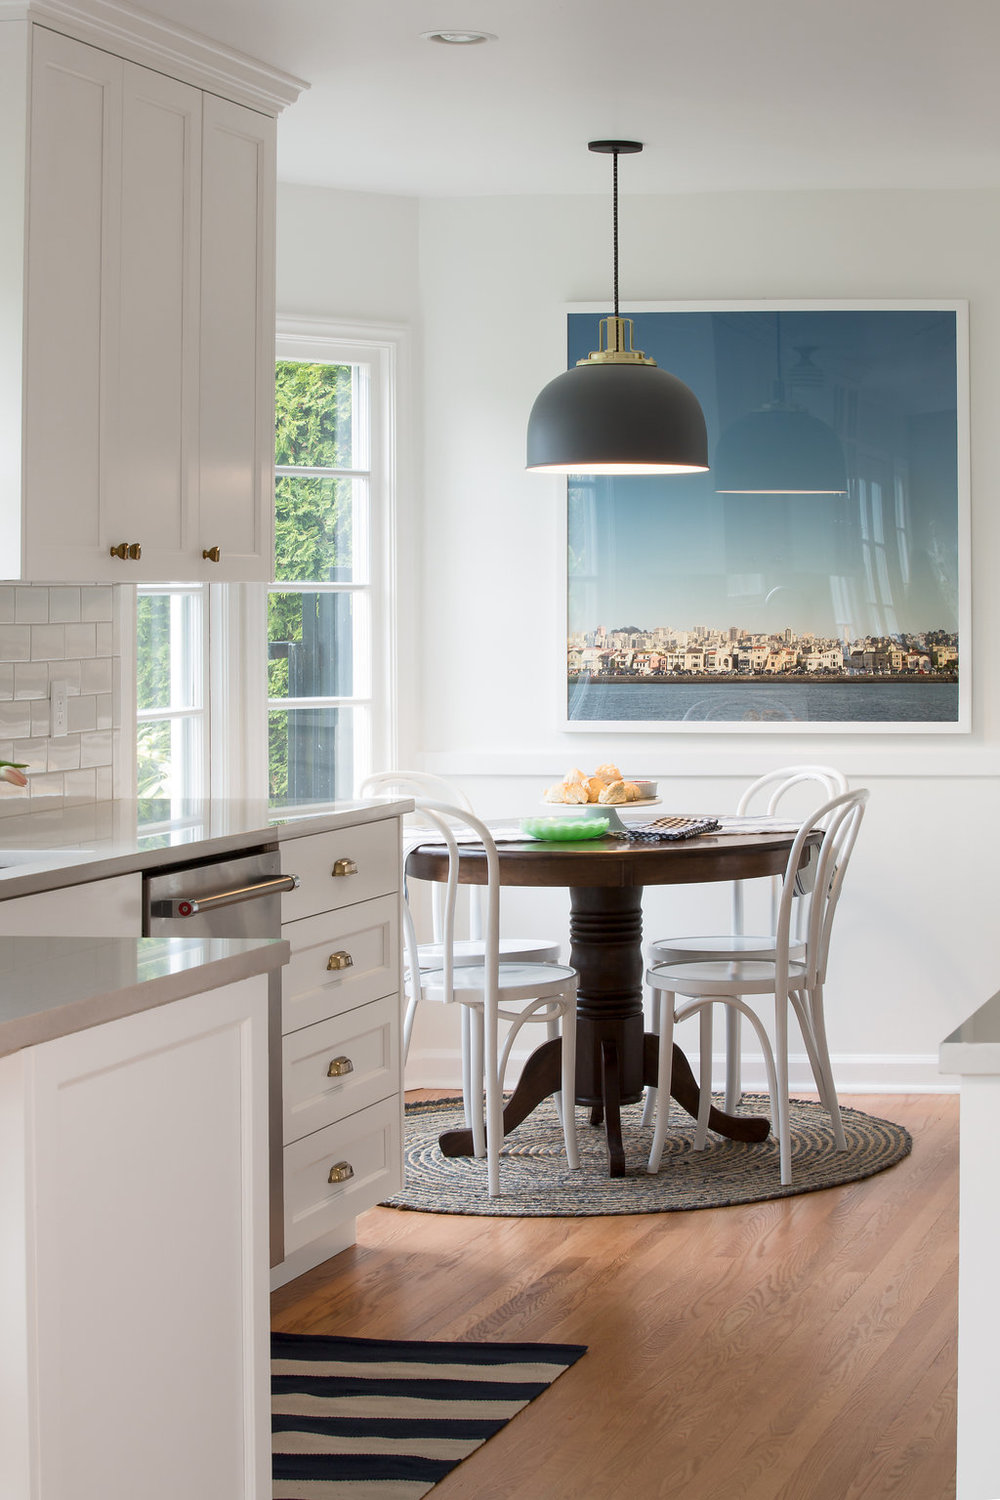 DistinctiveKitchens-Magnolia--3.jpg